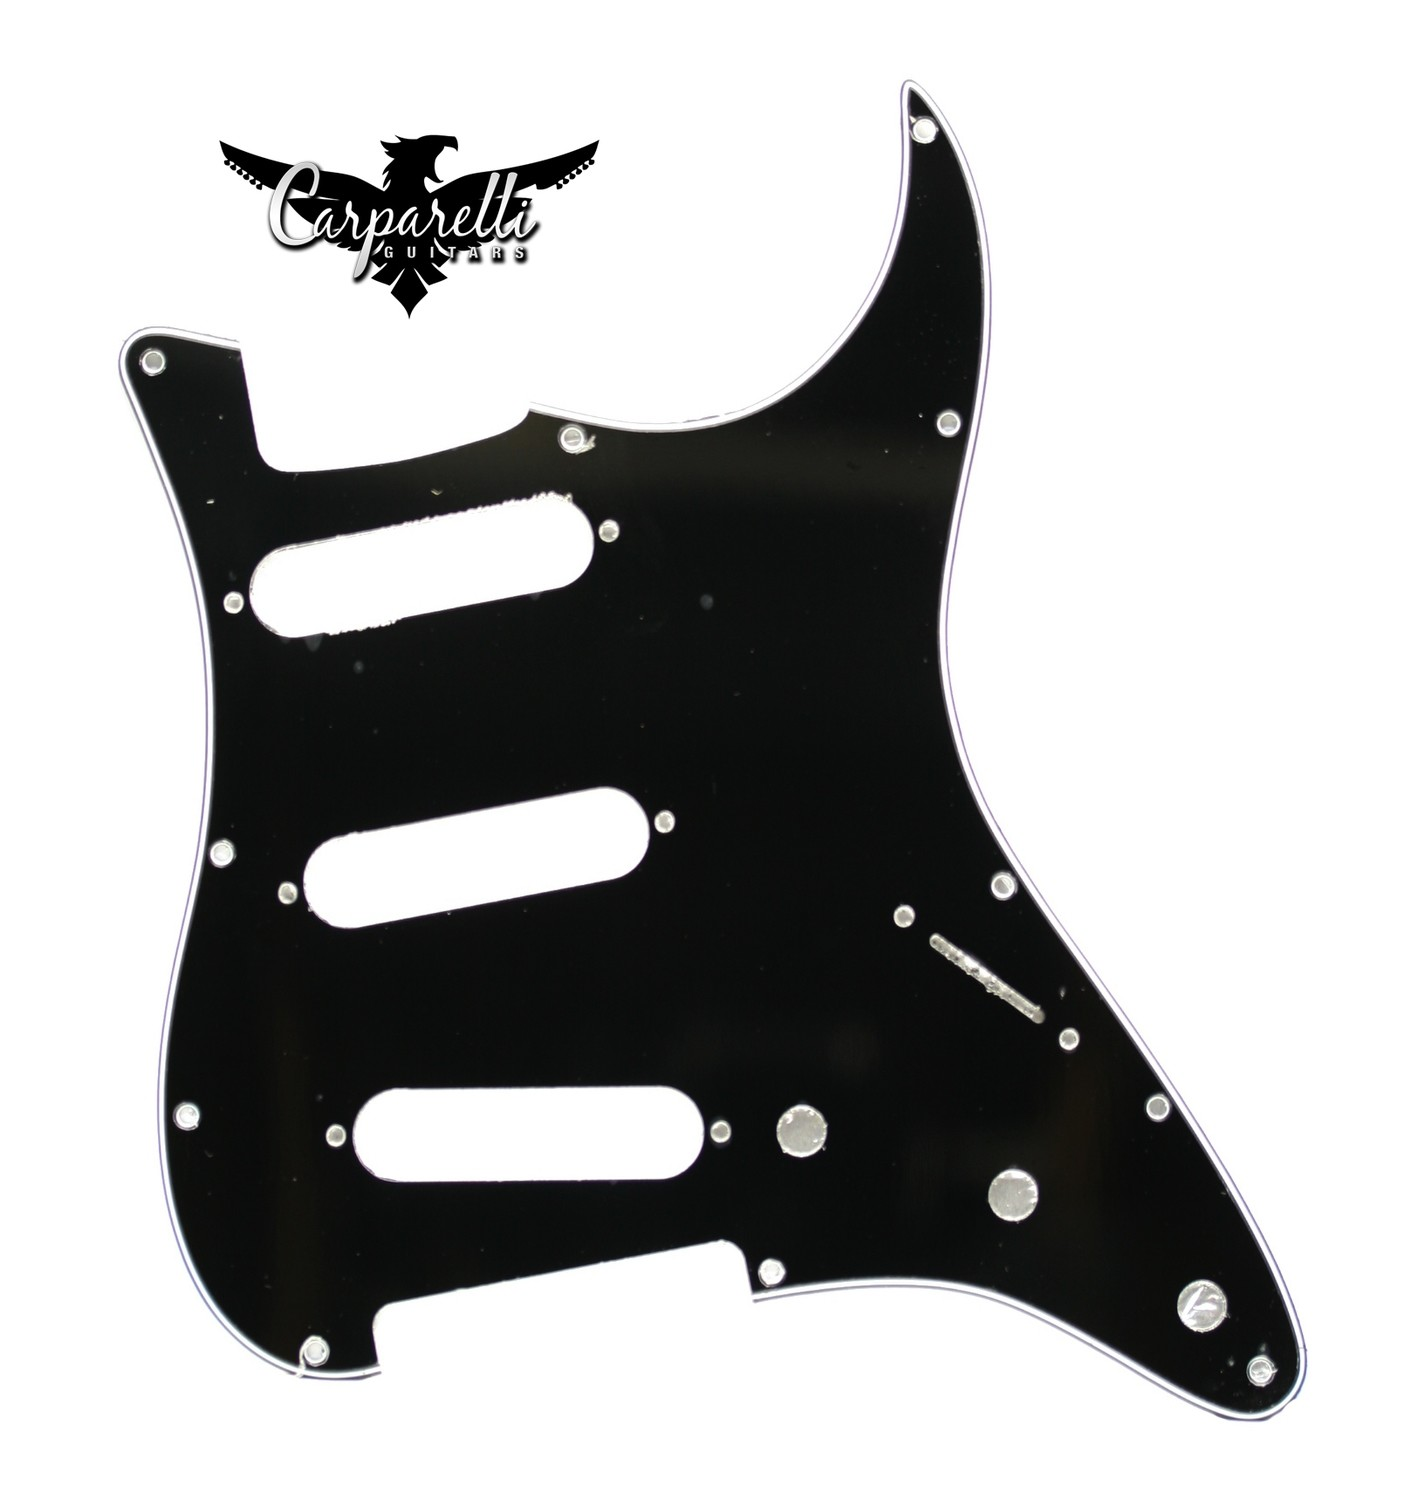 Carparelli SSS Strat® Pickguard 11 Holes 3 Ply Black